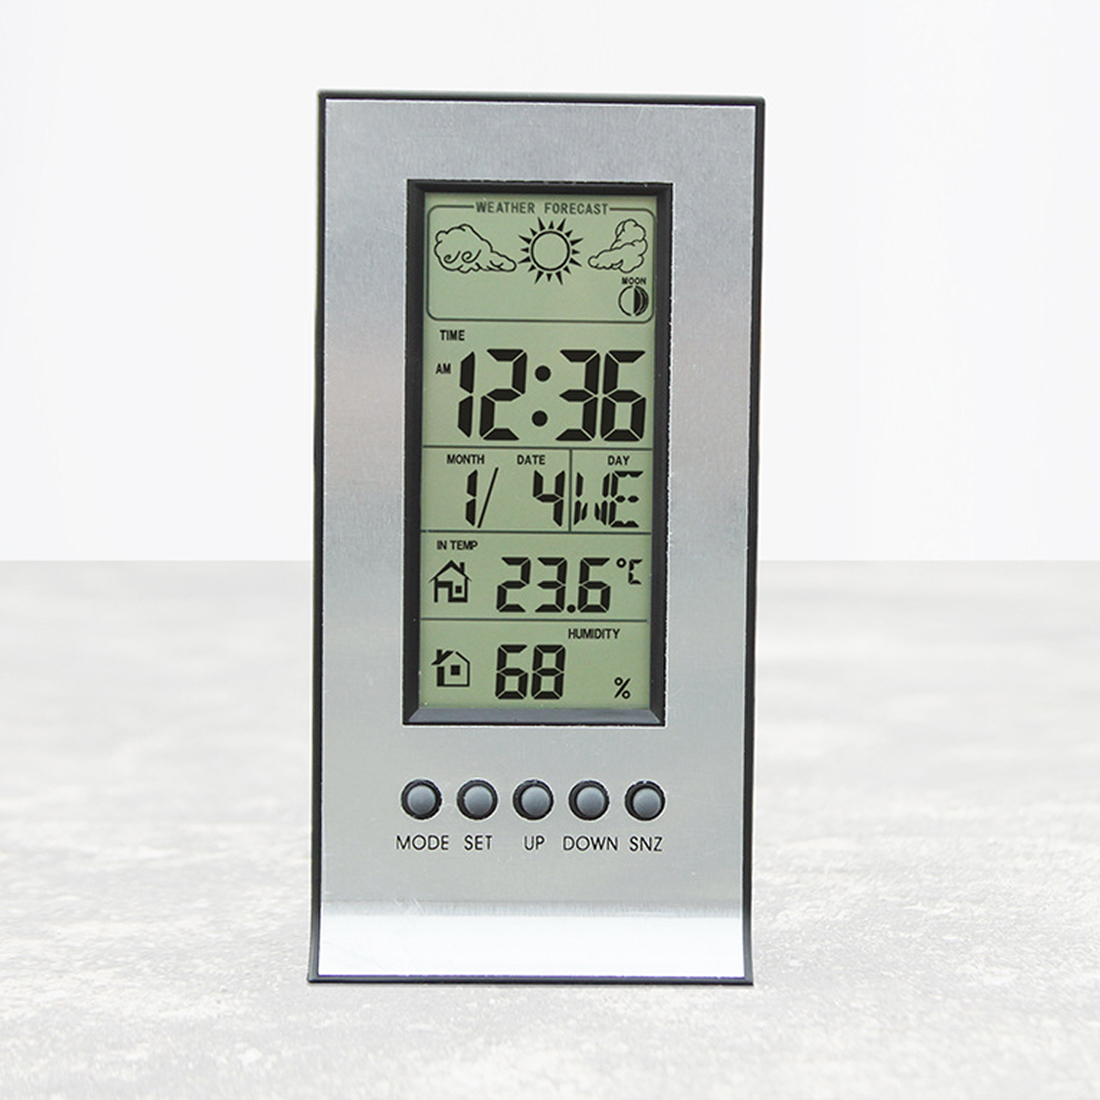 цена на Thermometer Hygrometer Alarm Clock Calendar Temperature Records Wireless Weather Station with Wireless Sensors Meteo Station